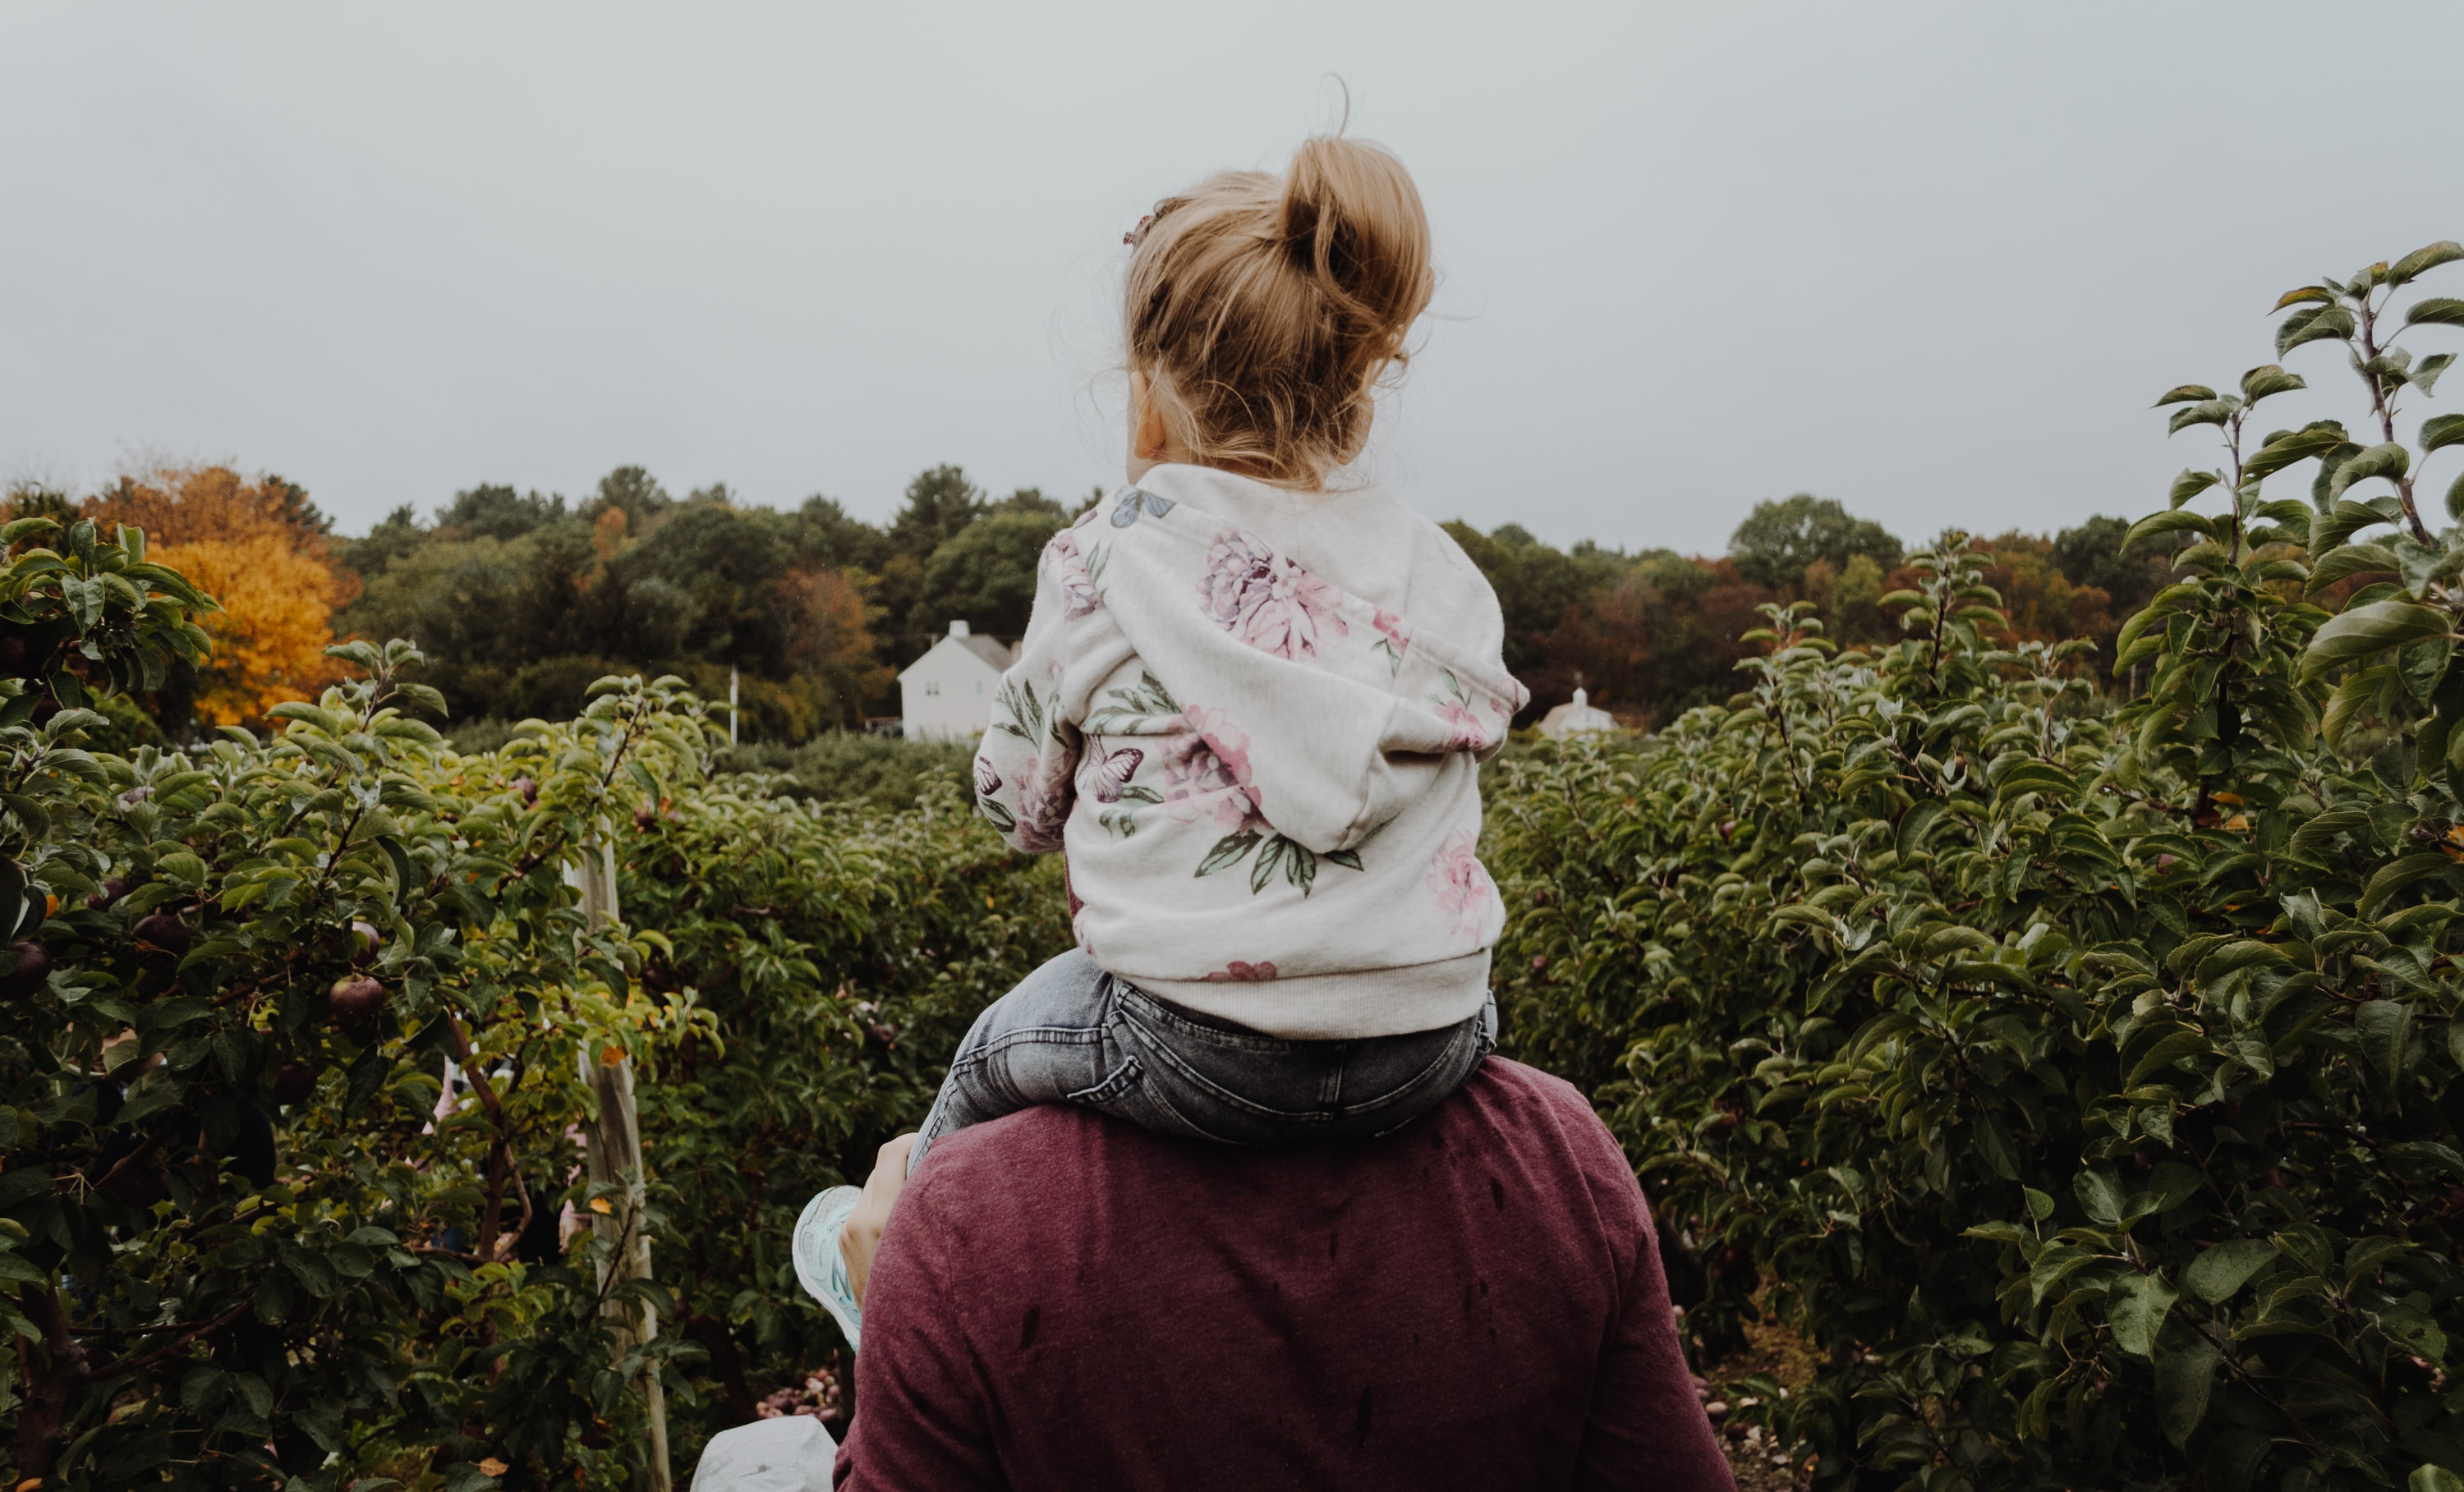 photo of girl riding on person shoulder